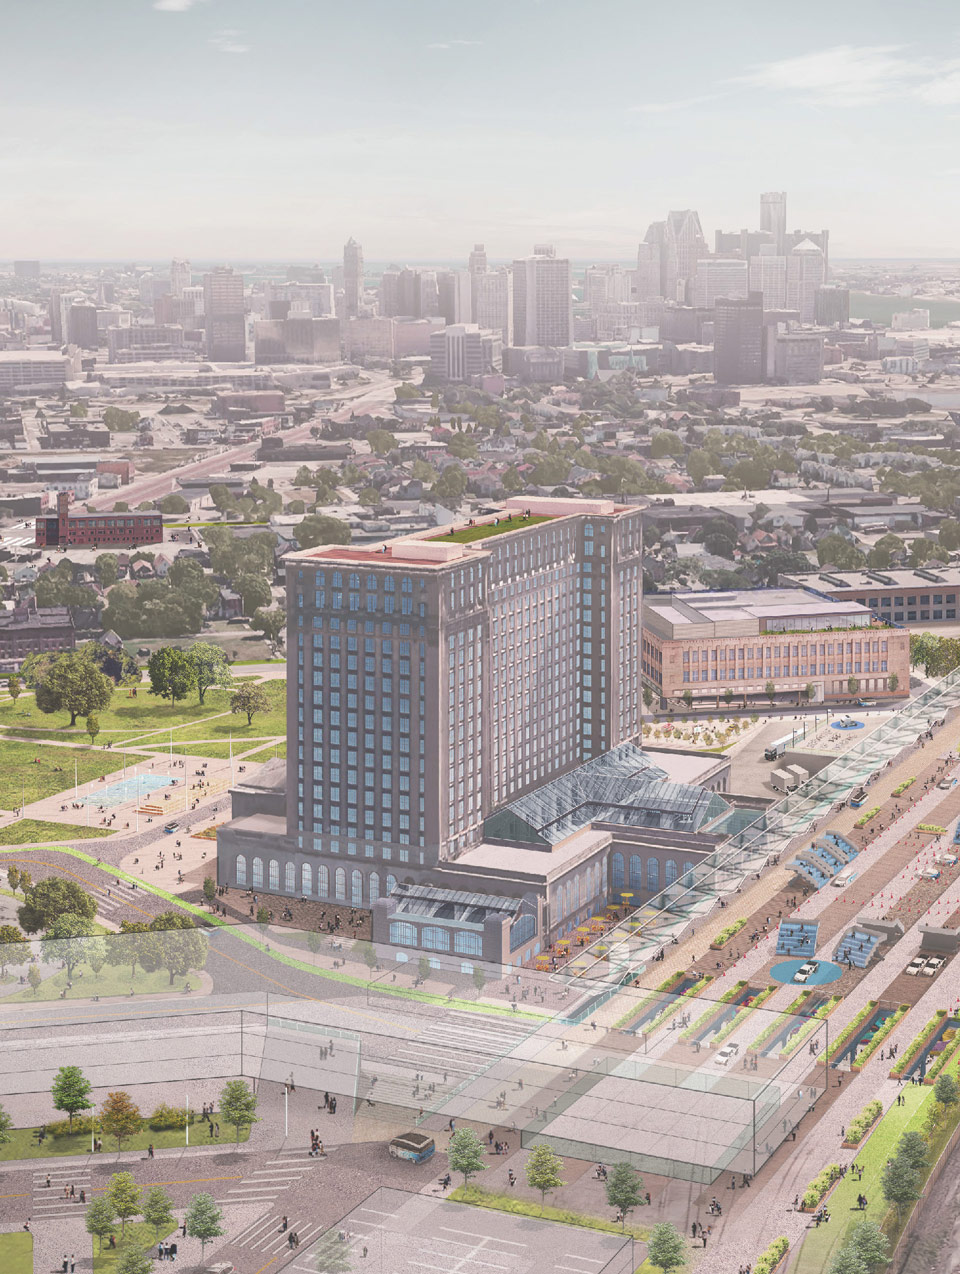 3-D Rendering of Michigan Central Station and how it will look after renovations are complete.